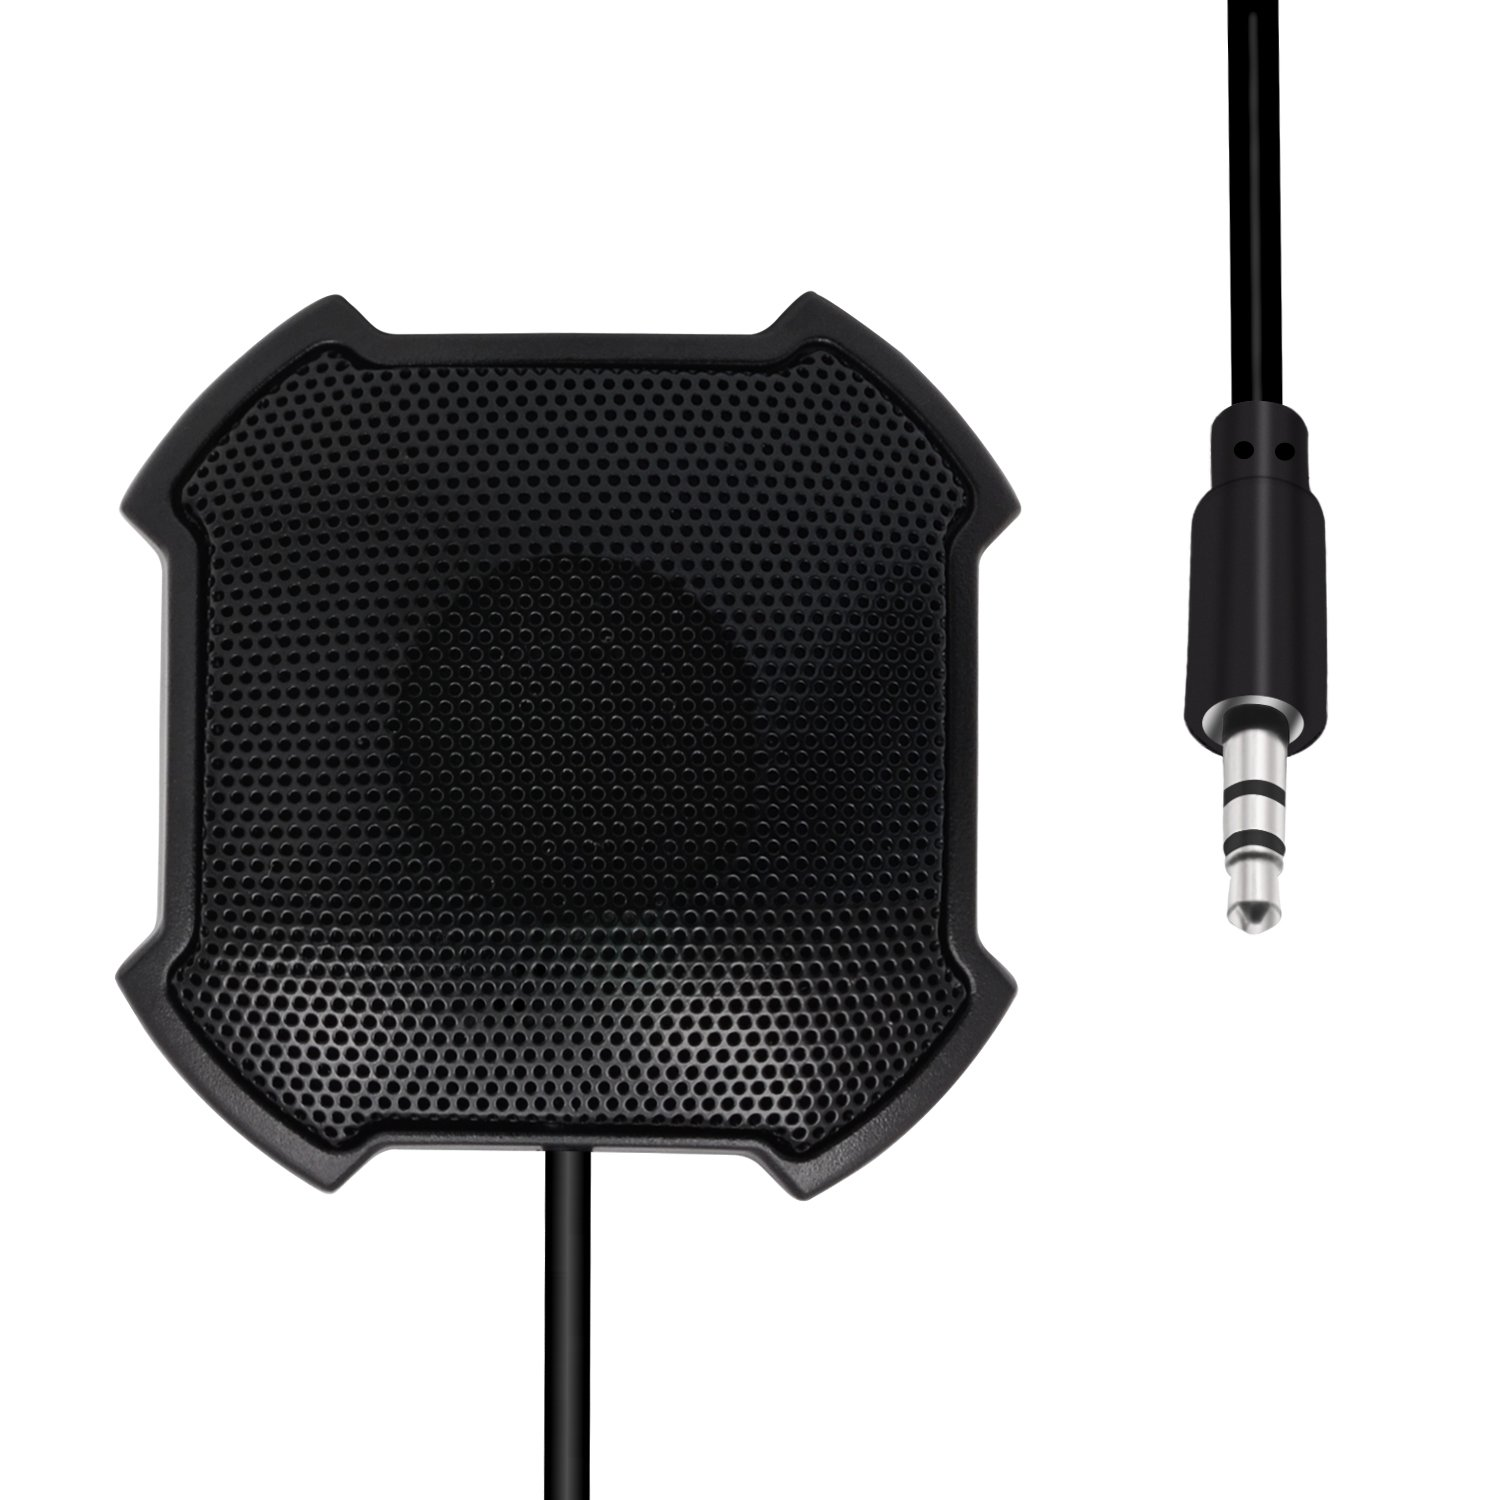 Conference Microphone, LEFON Omnidirectional Condenser Boundary Microphone, 3.5mm Plug Table Top Mic Mini Stereo Desktop Meeting Computer PC Microphone for Skype and Other VoIP Calls, Black